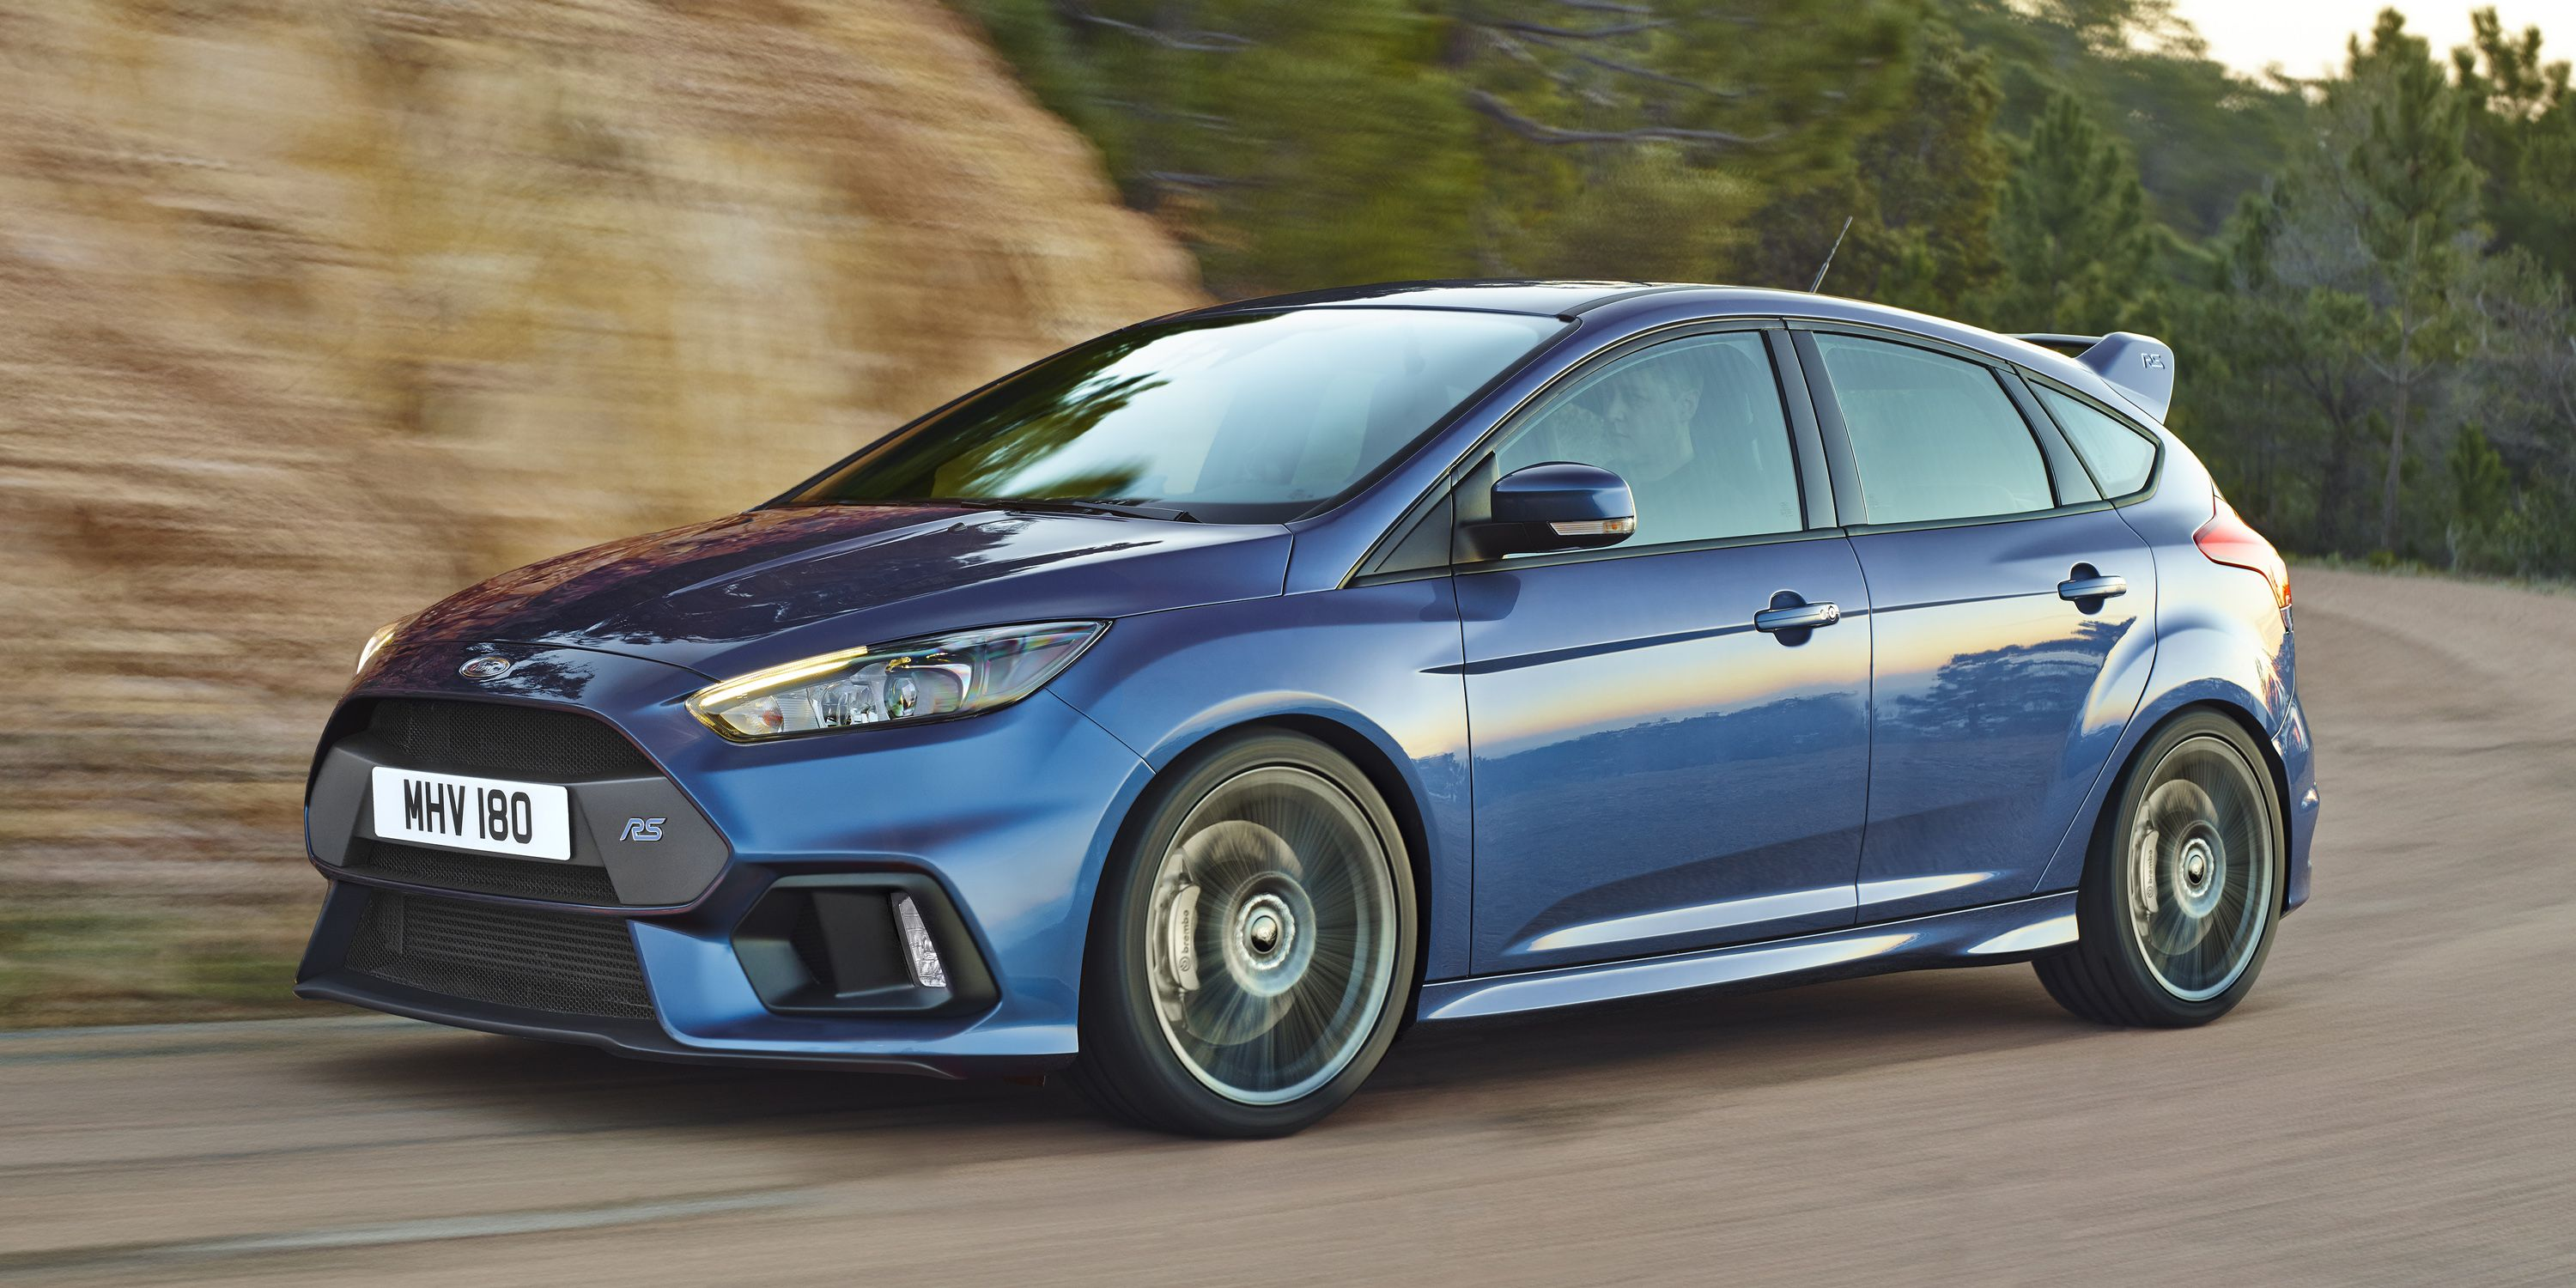 2016 Ford Focus RS s & Video